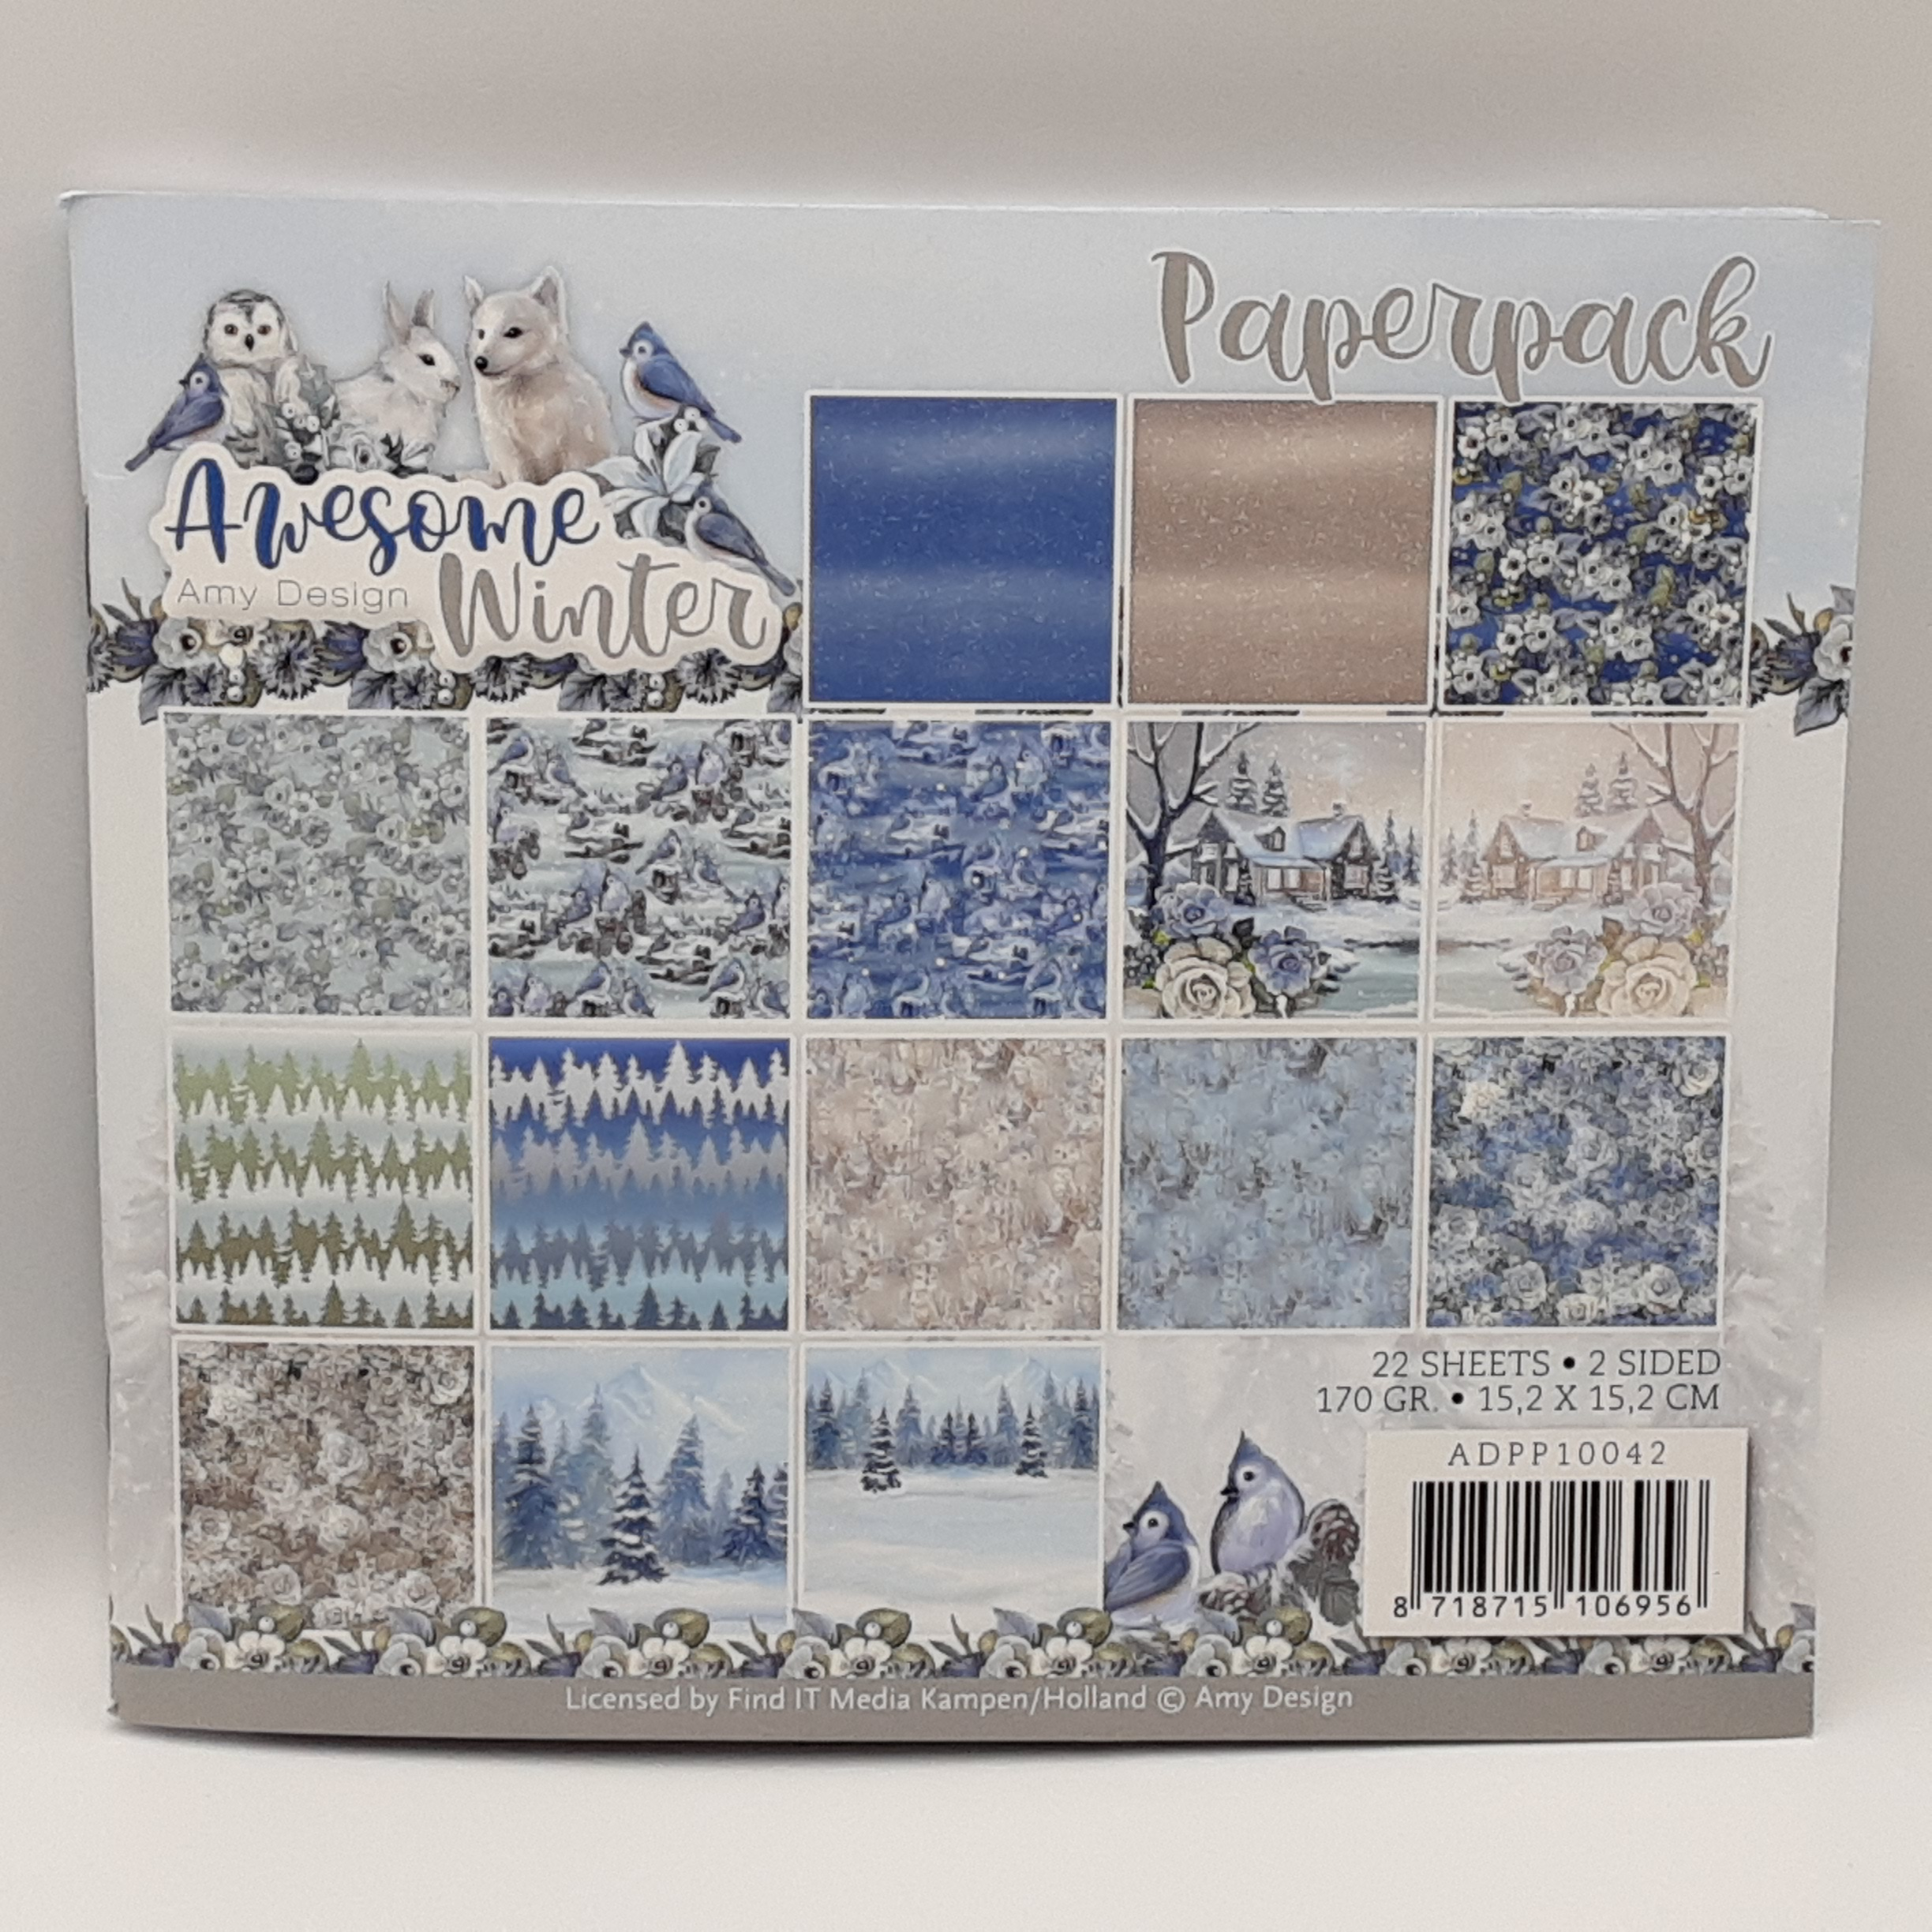 Paperpack awesome winter